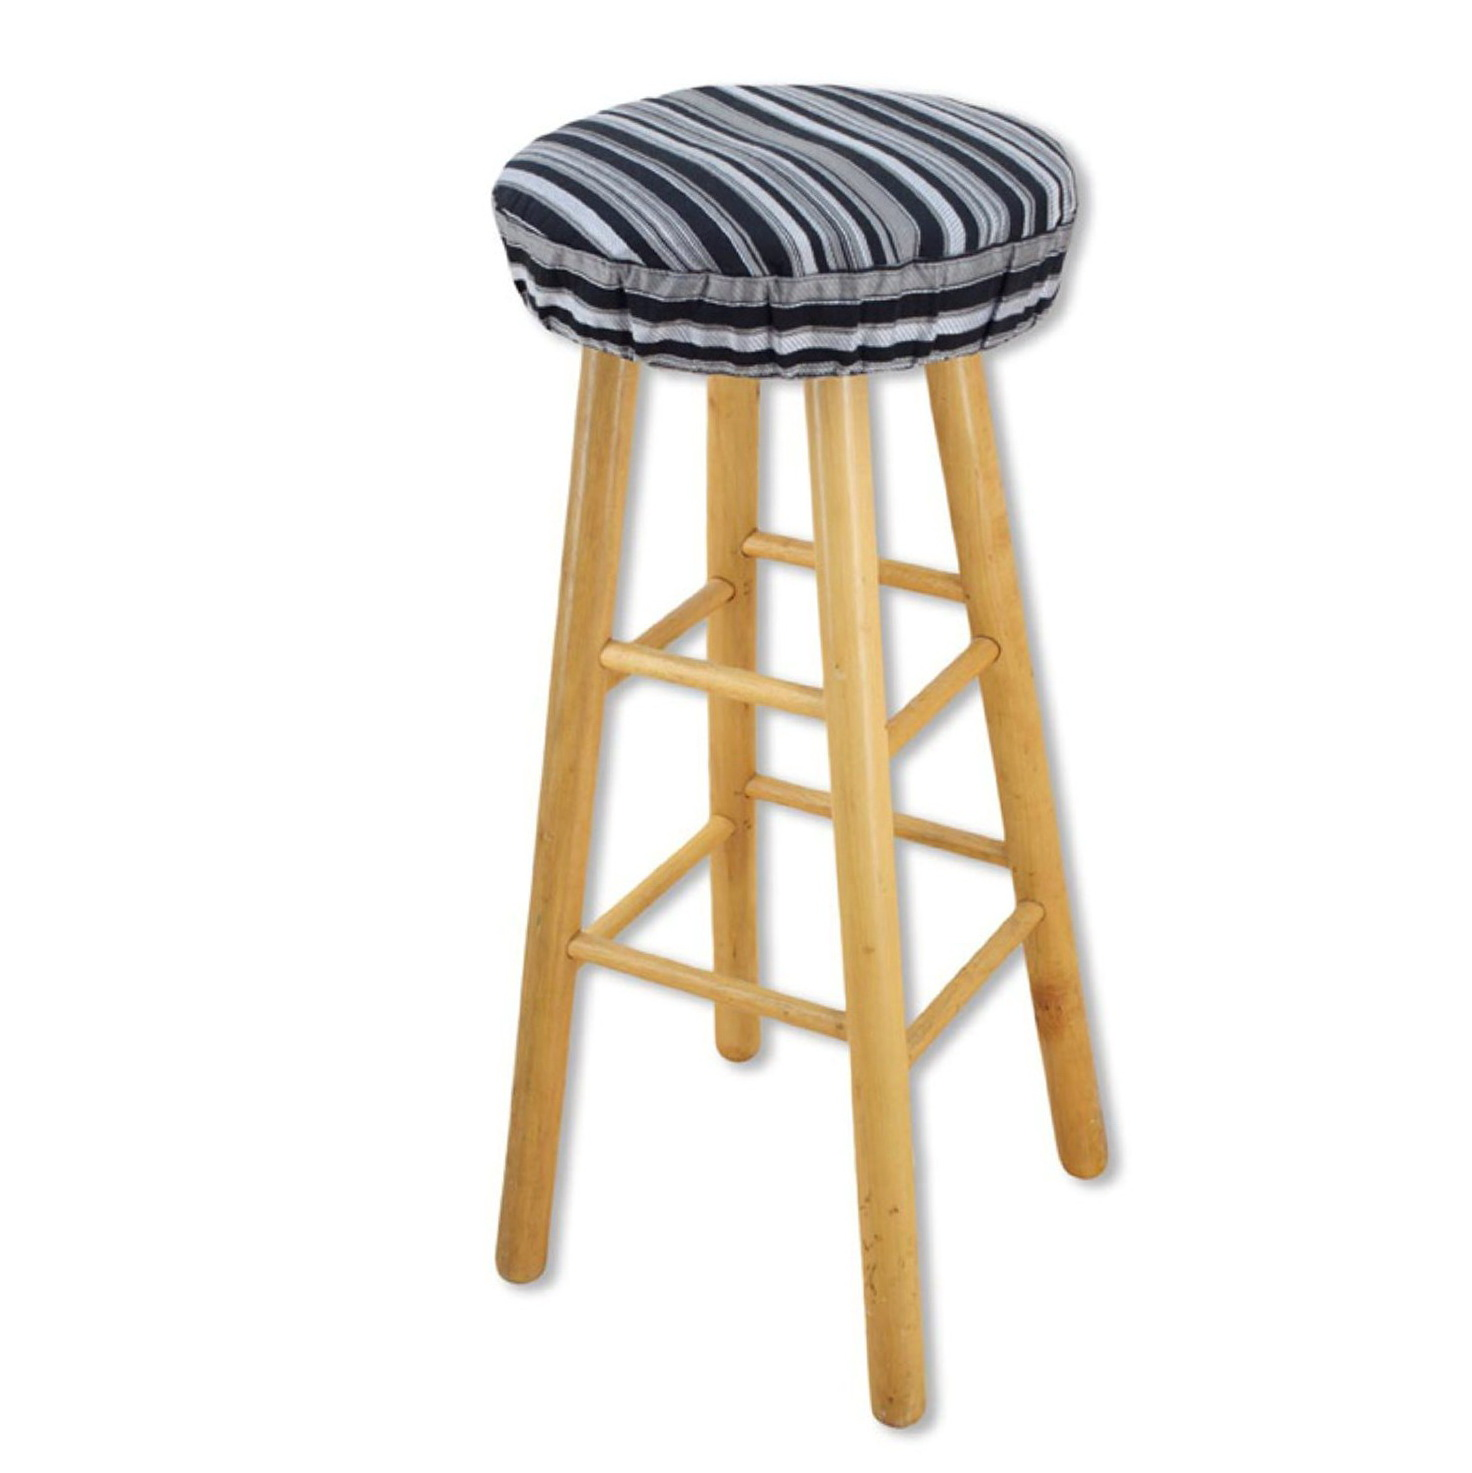 Round Stool Cushions With Elastic Home Design Ideas